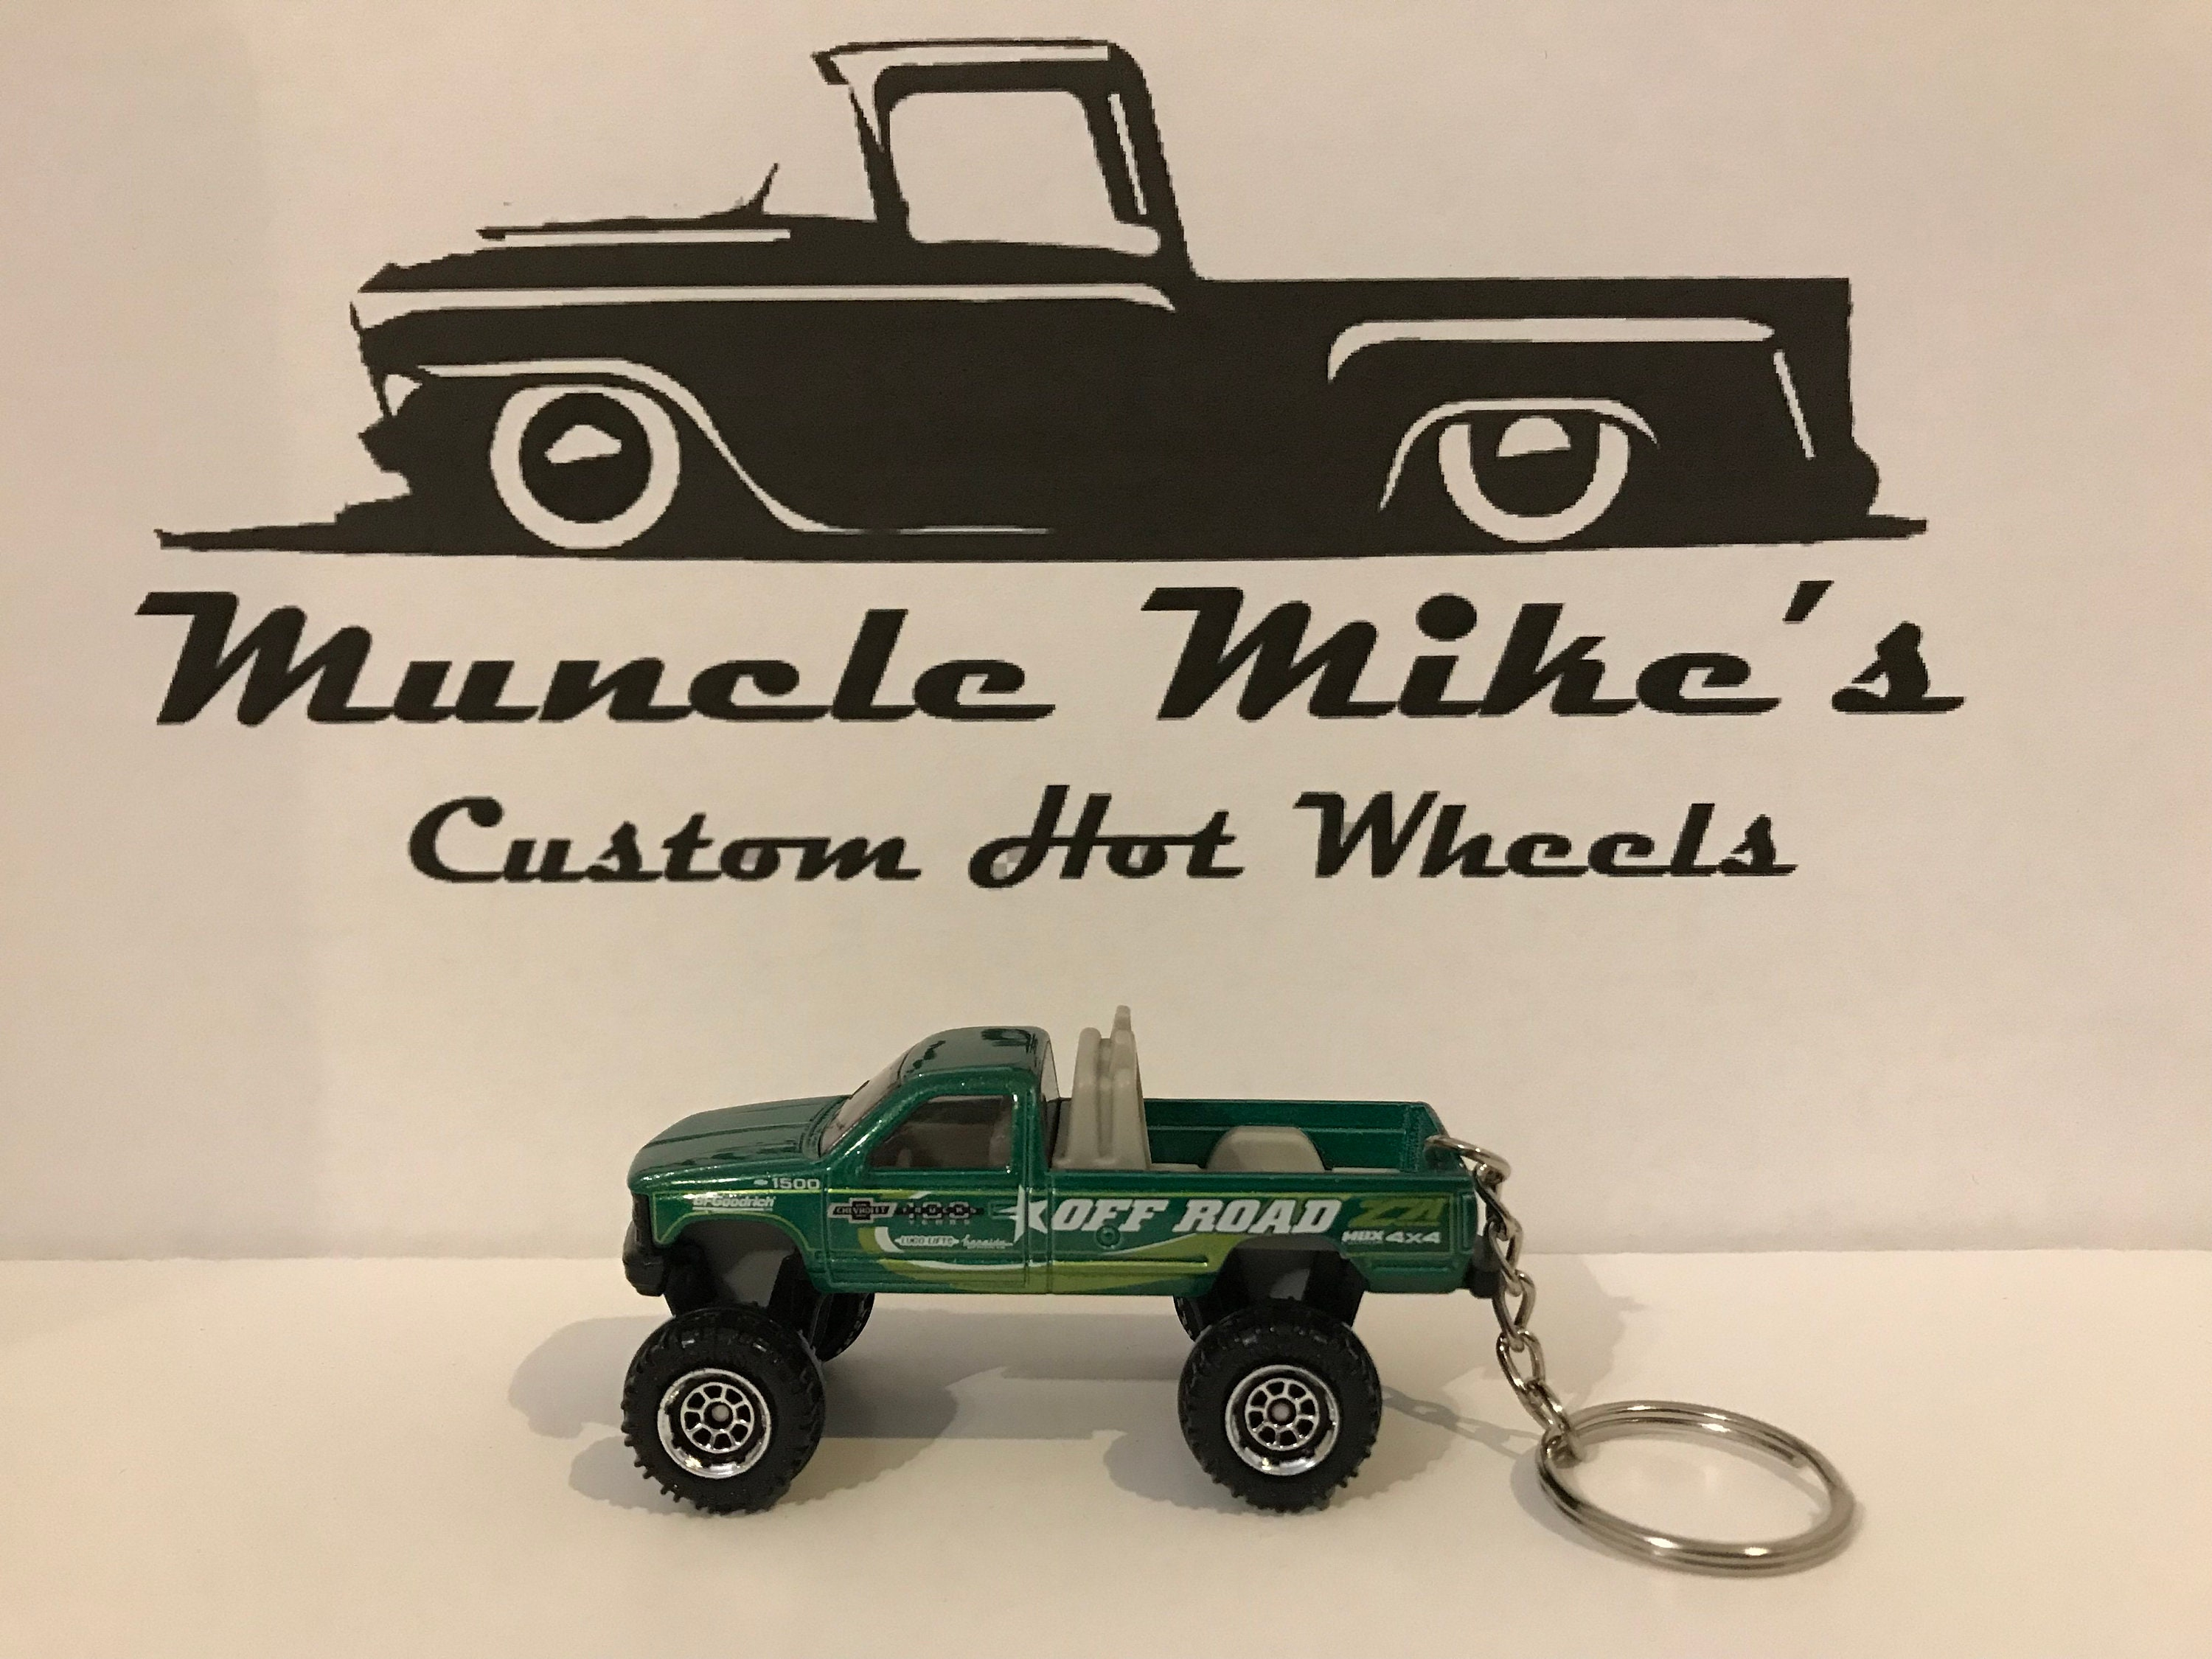 Custom Hot Wheels green Chevy K-1500 pickup truck key chain keychain